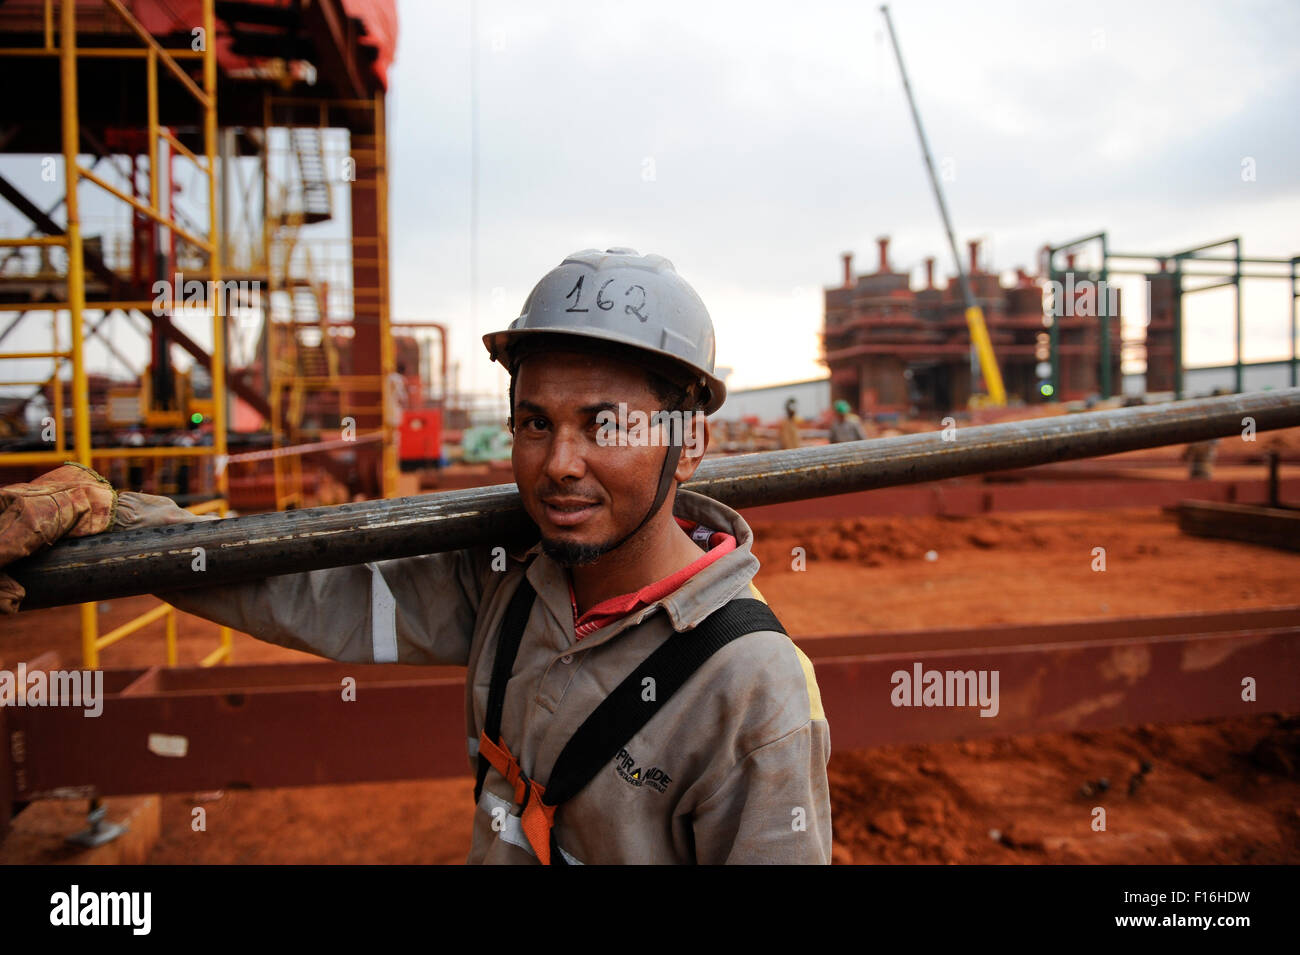 ANGOLA Malange , Biocom Project a joint venture between brazil company Odebrecht and Sonangol, state owned oil company - Stock Image